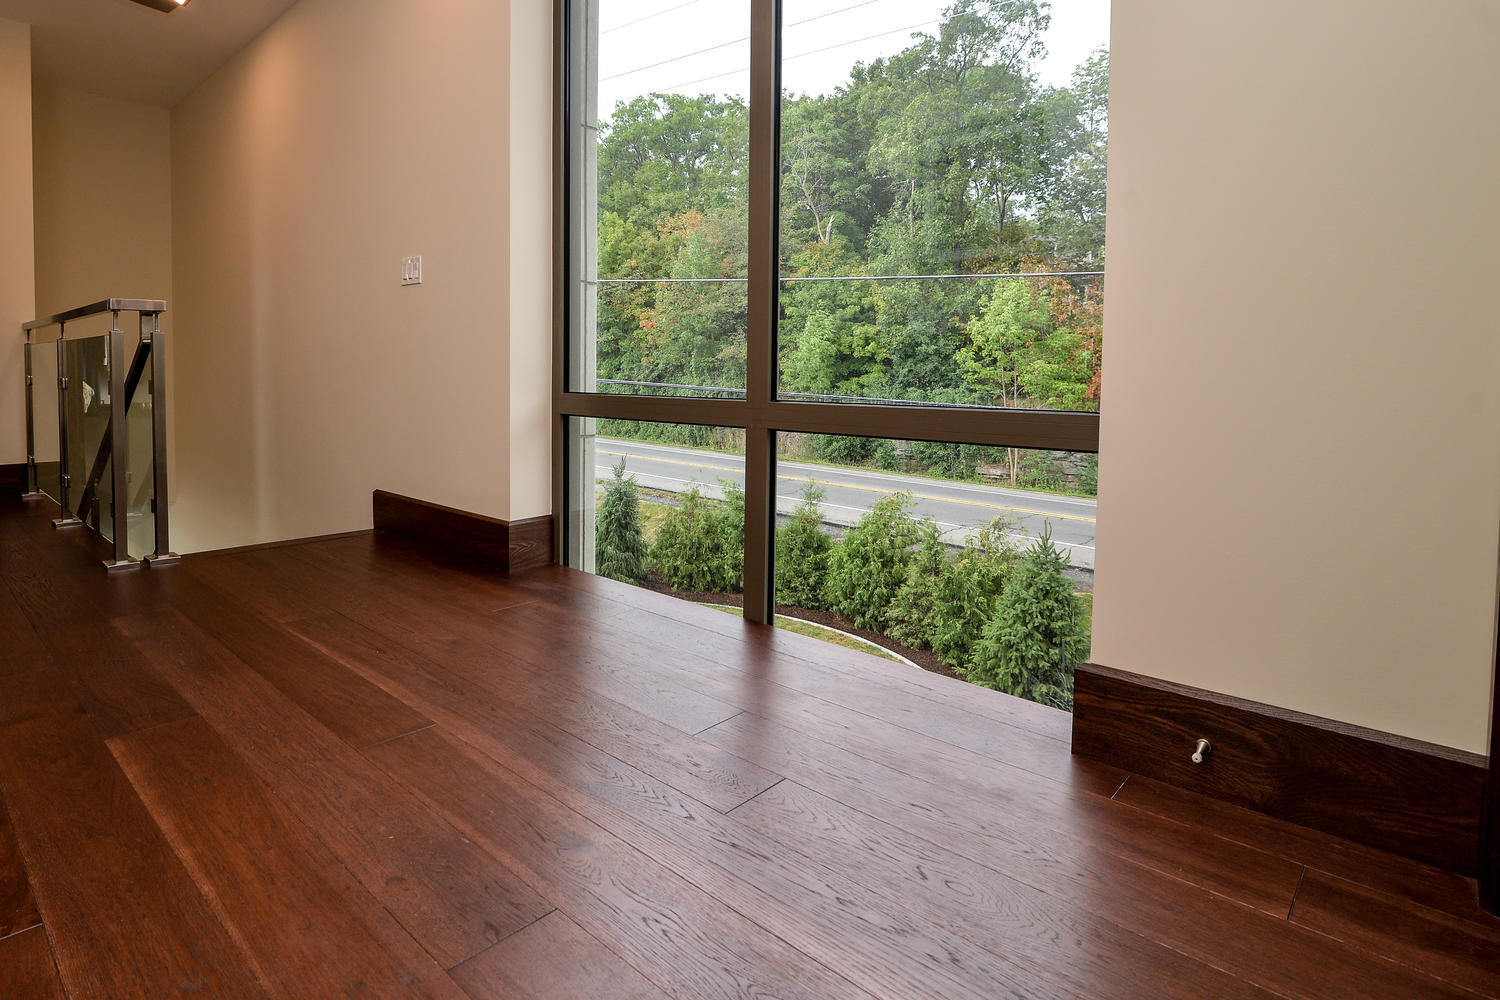 Hickory Wood Flooring by Gaylord Flooring in Ottawa